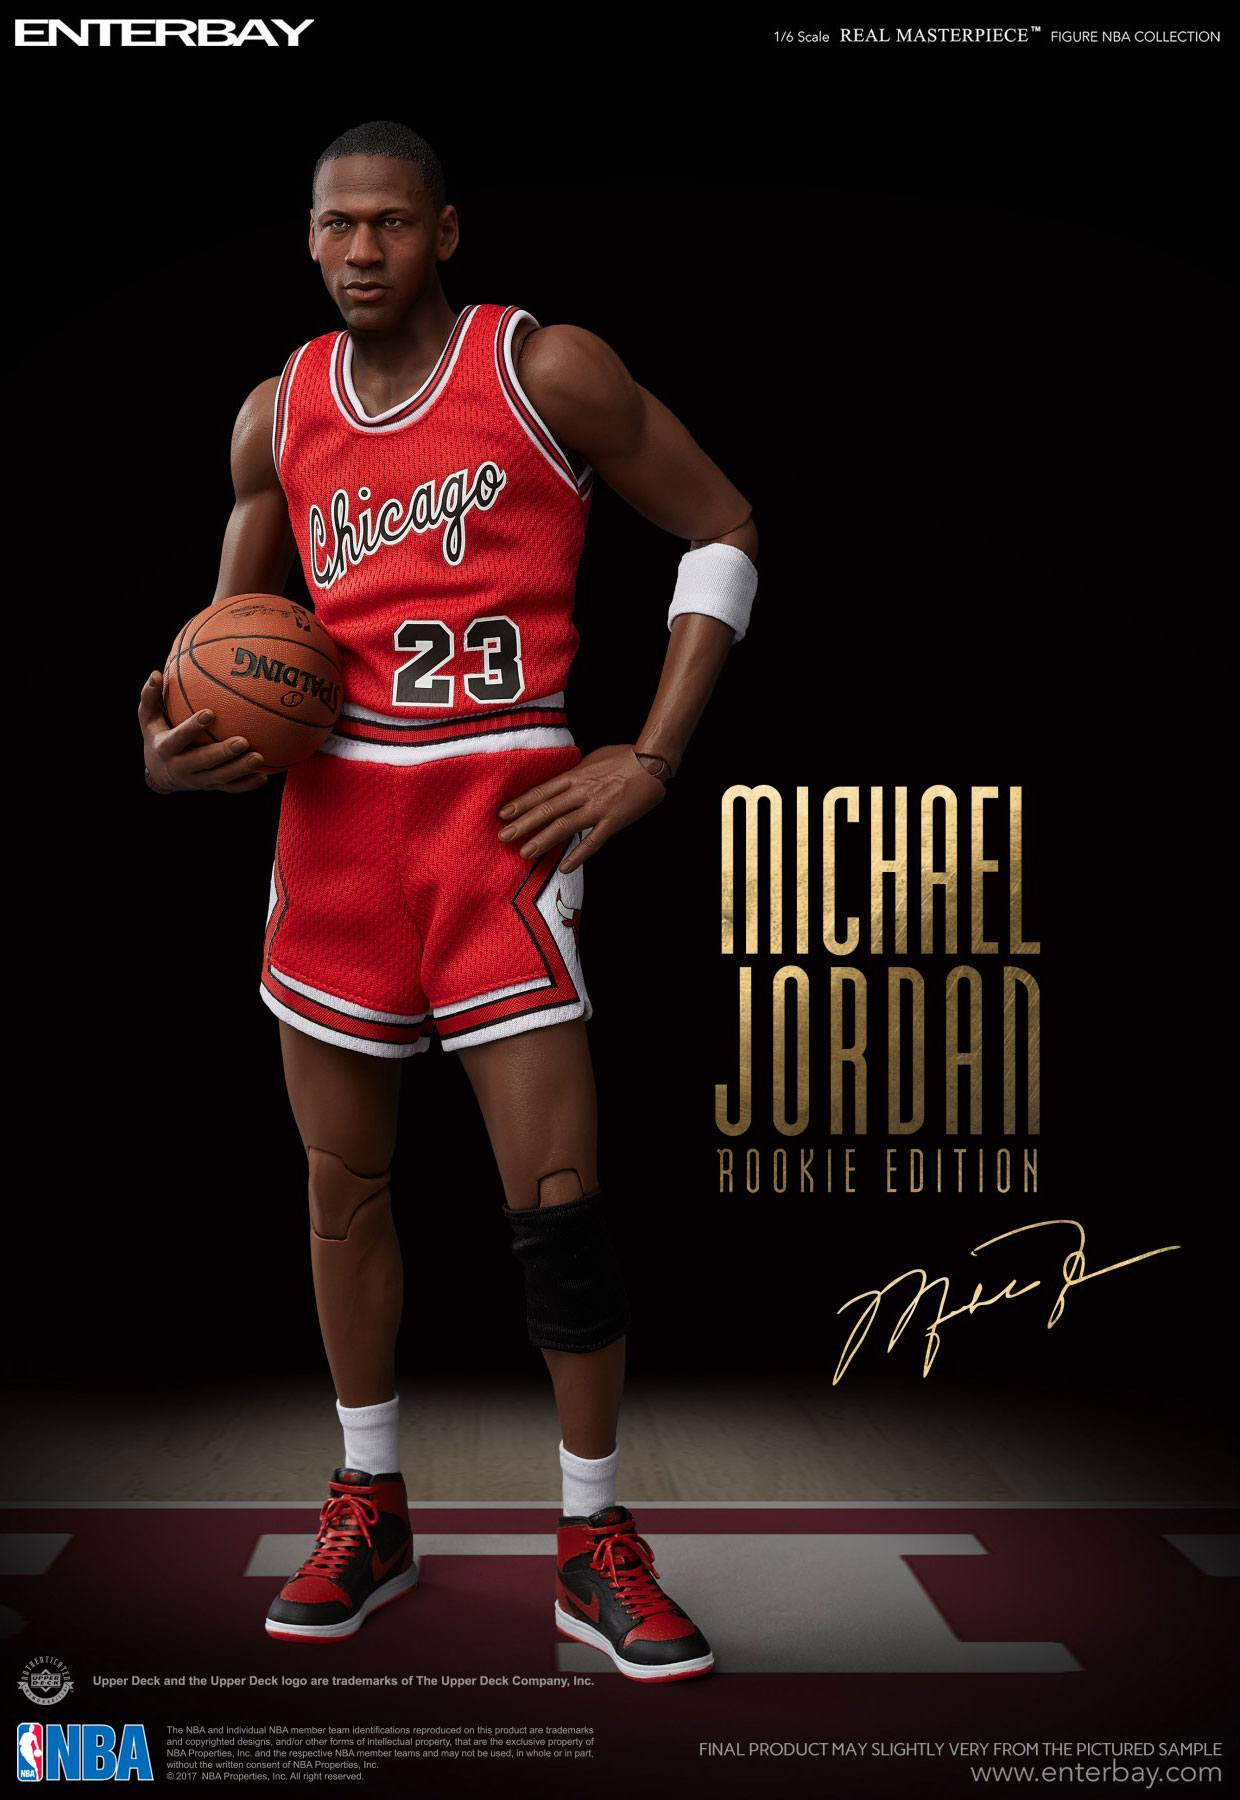 lim Edicollector Figure 6 Enterbay 3000 Edition Rookie Collection 1 Nba 12″ Michael Action Jordan